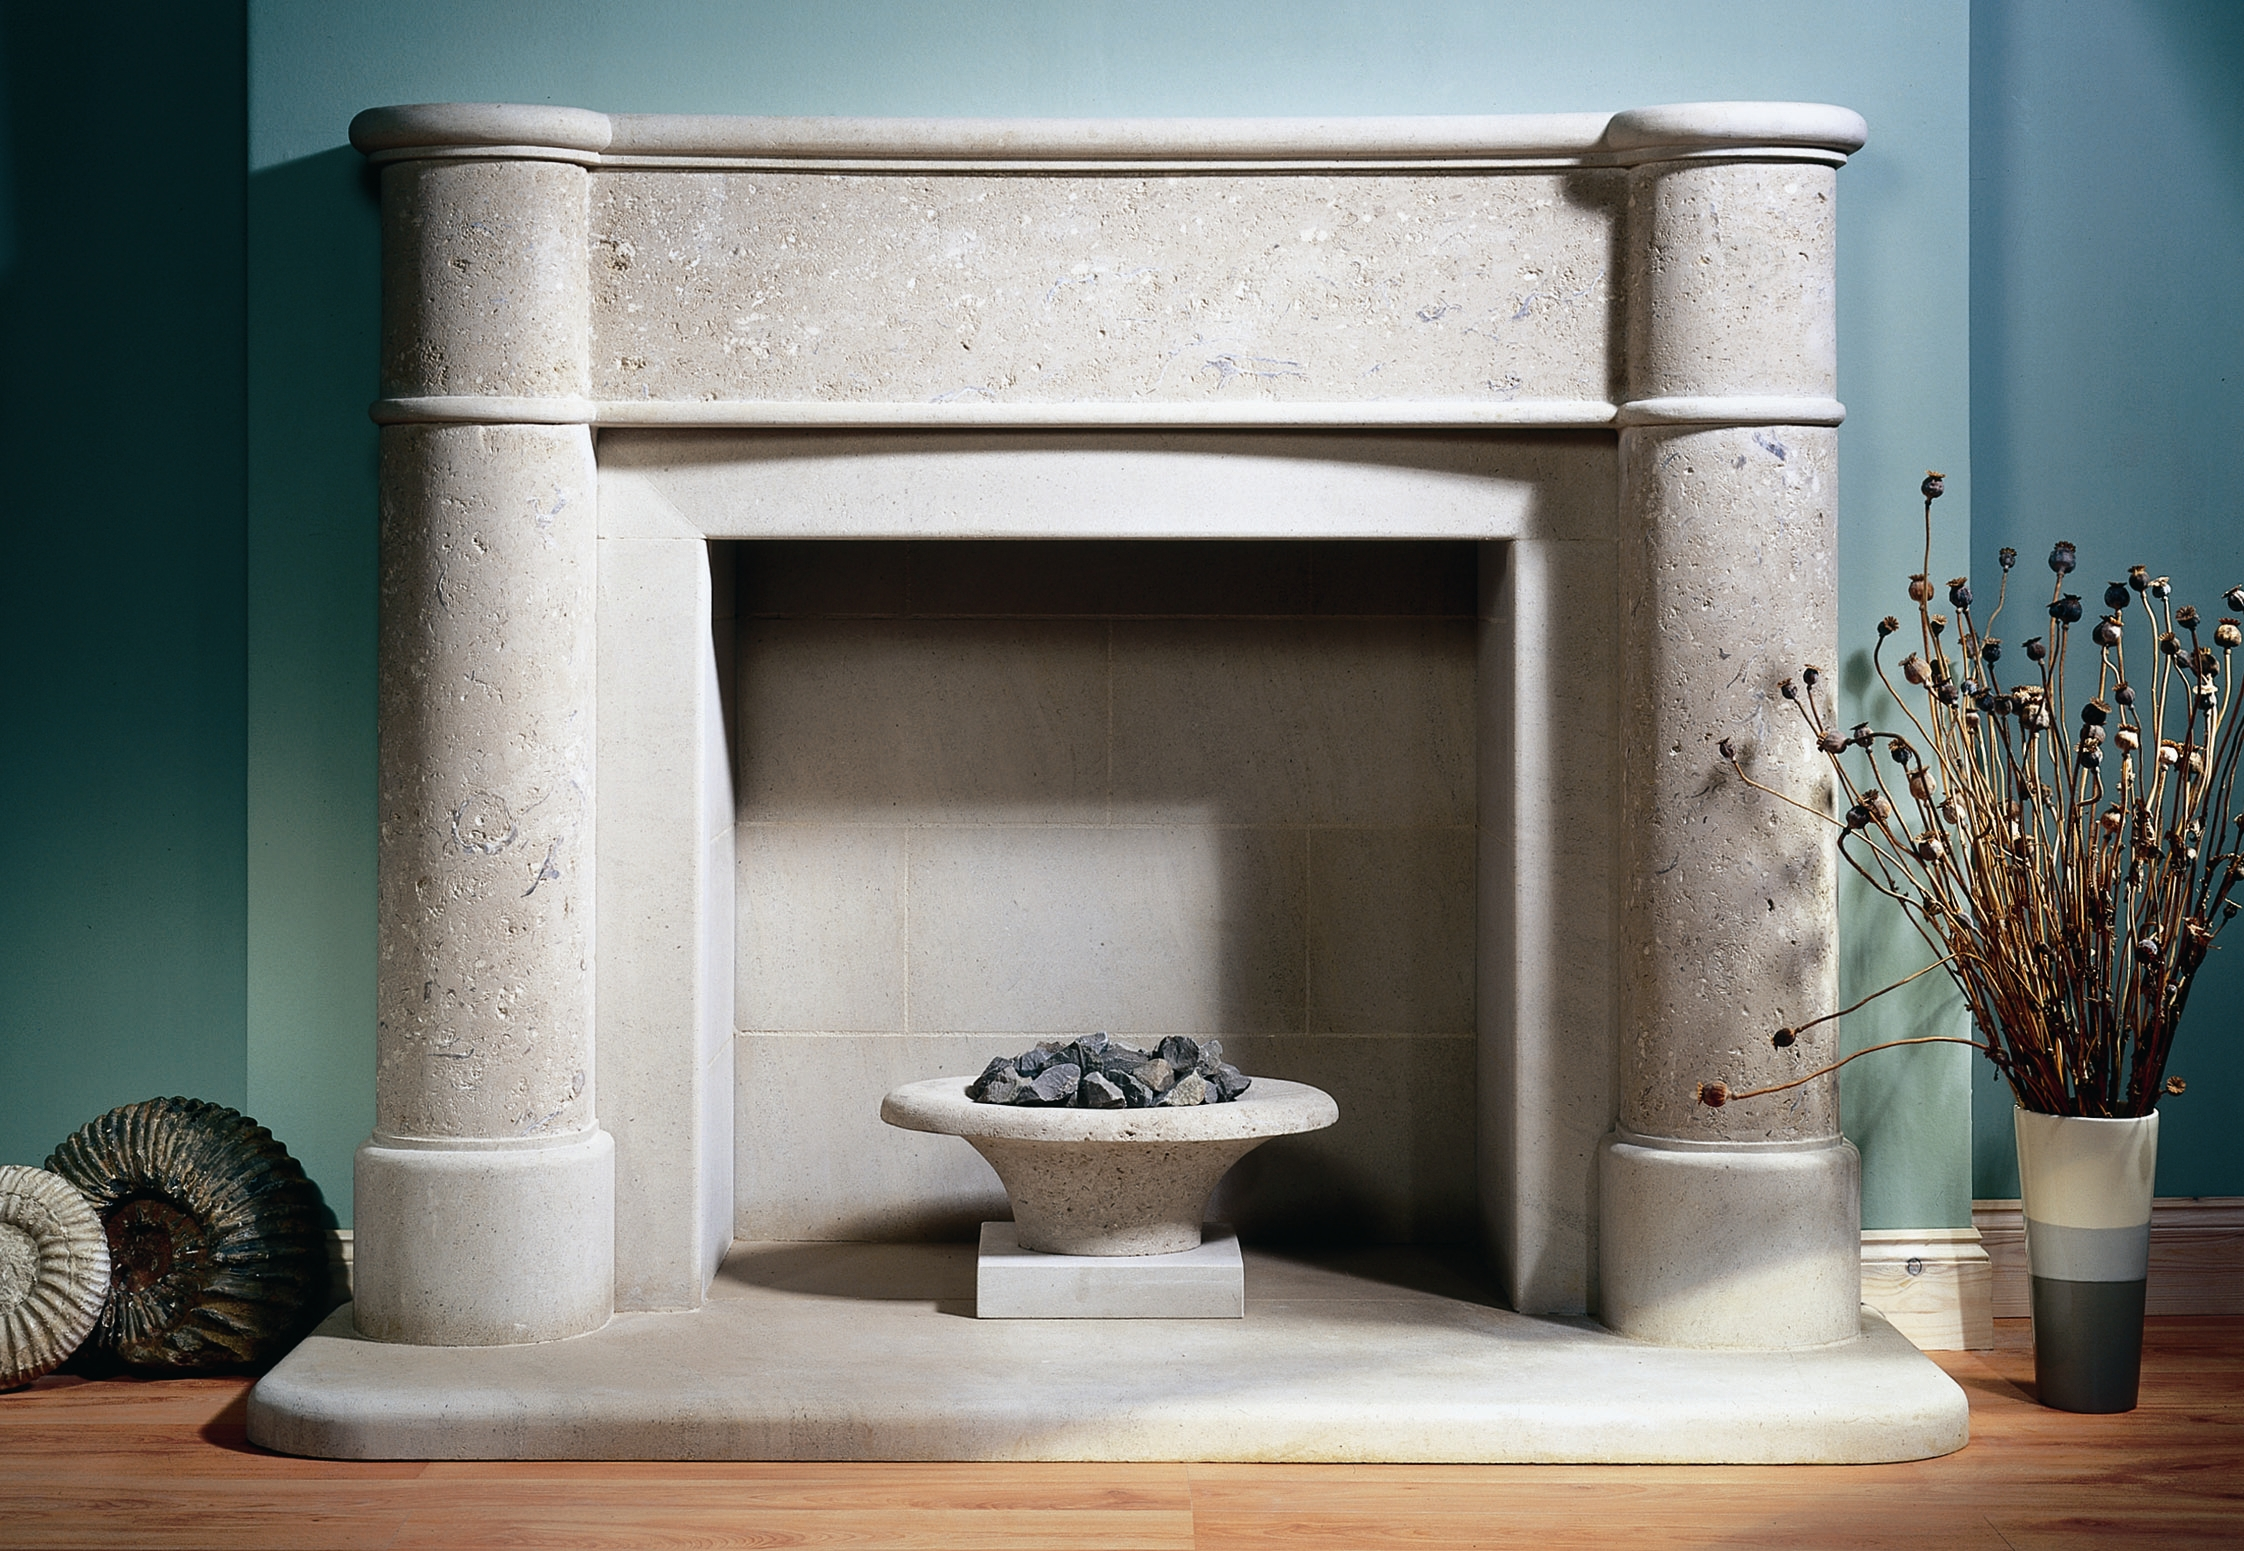 5. Portland Roach and Portland Basebed fire surround and firebowl – Chelsea